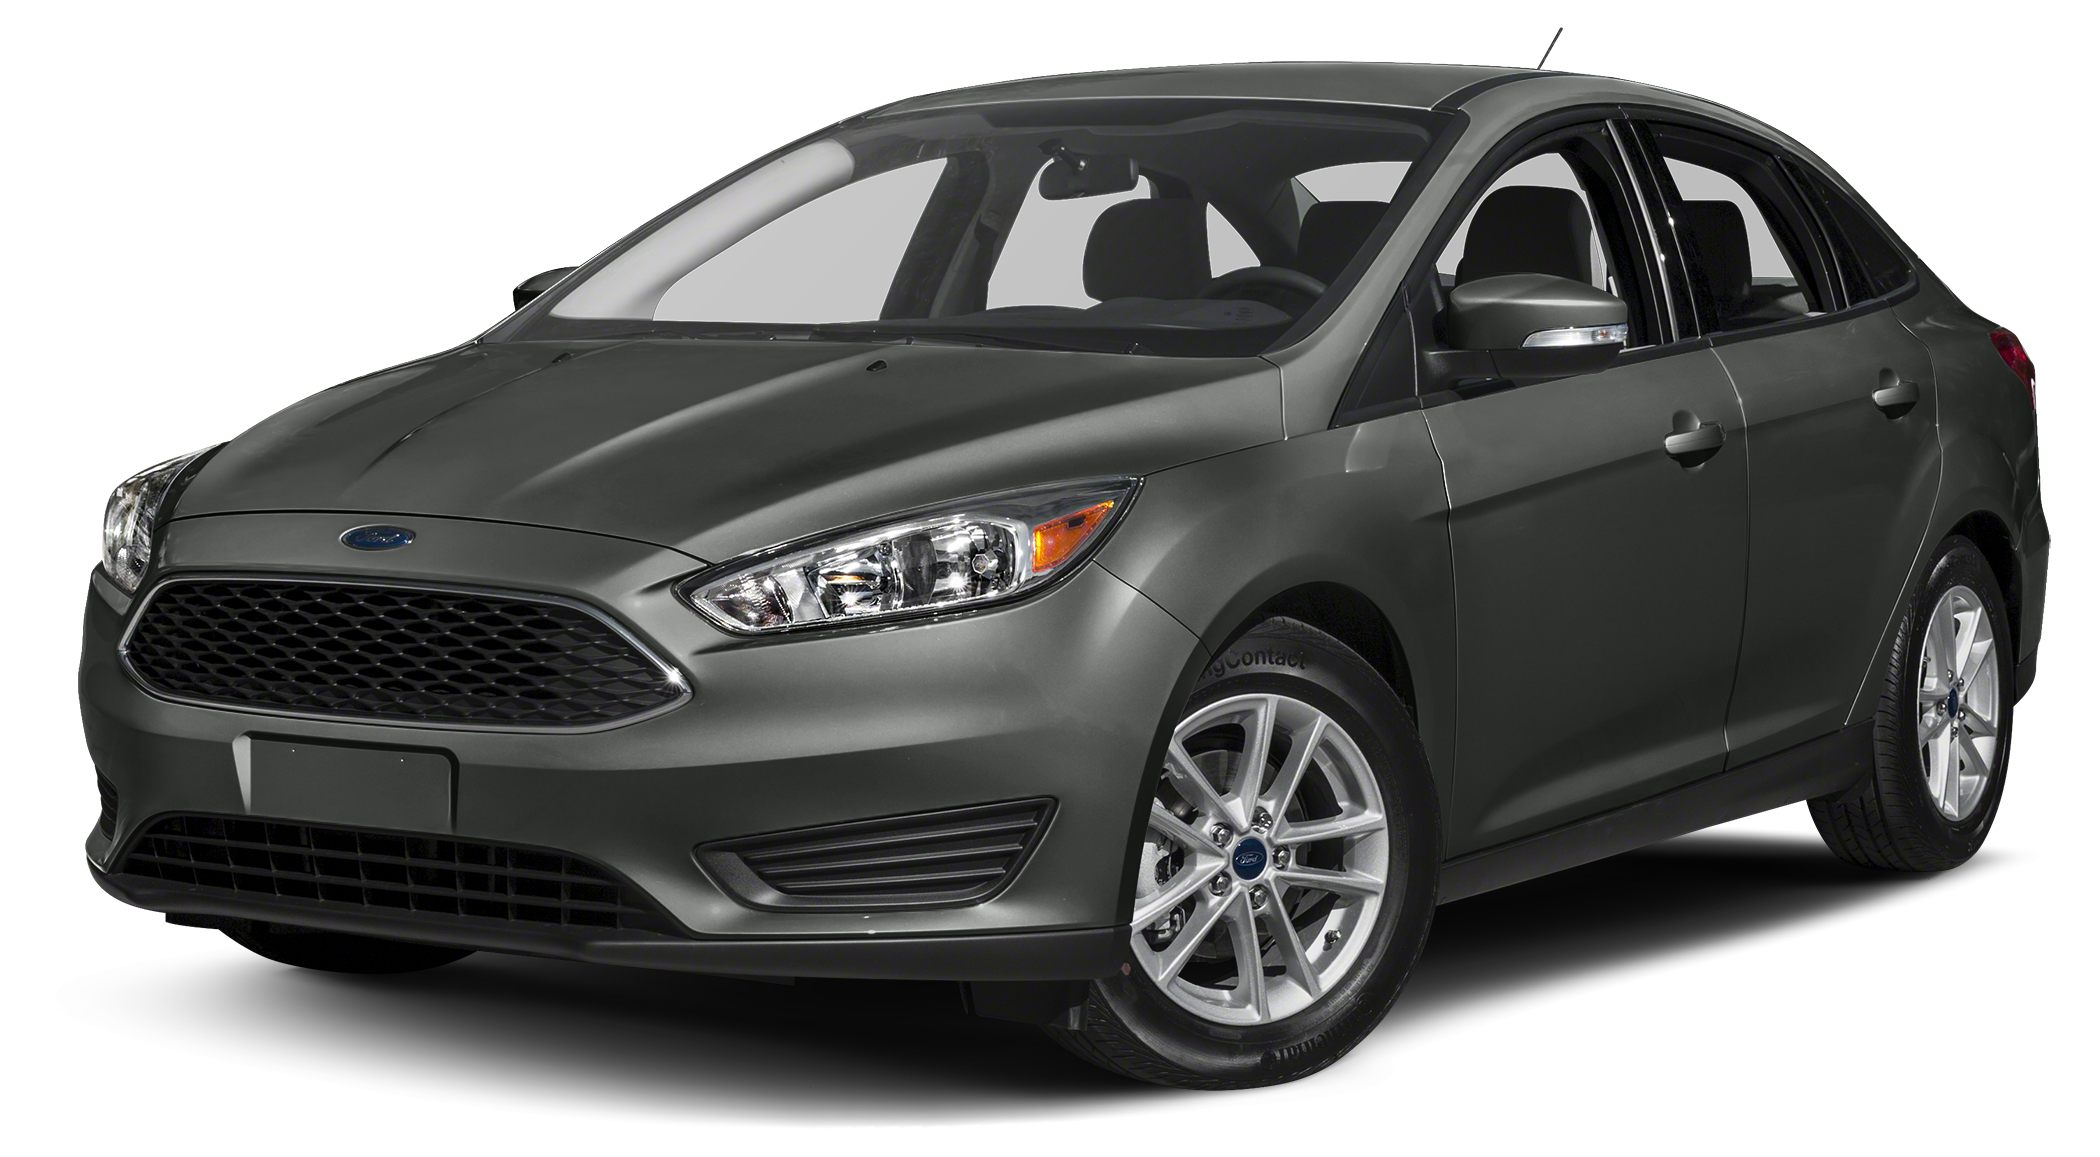 2015 Ford Focus SE Price includes 1250 - RETAIL Customer Cash 1000 - Ford Credit Retail Bonu